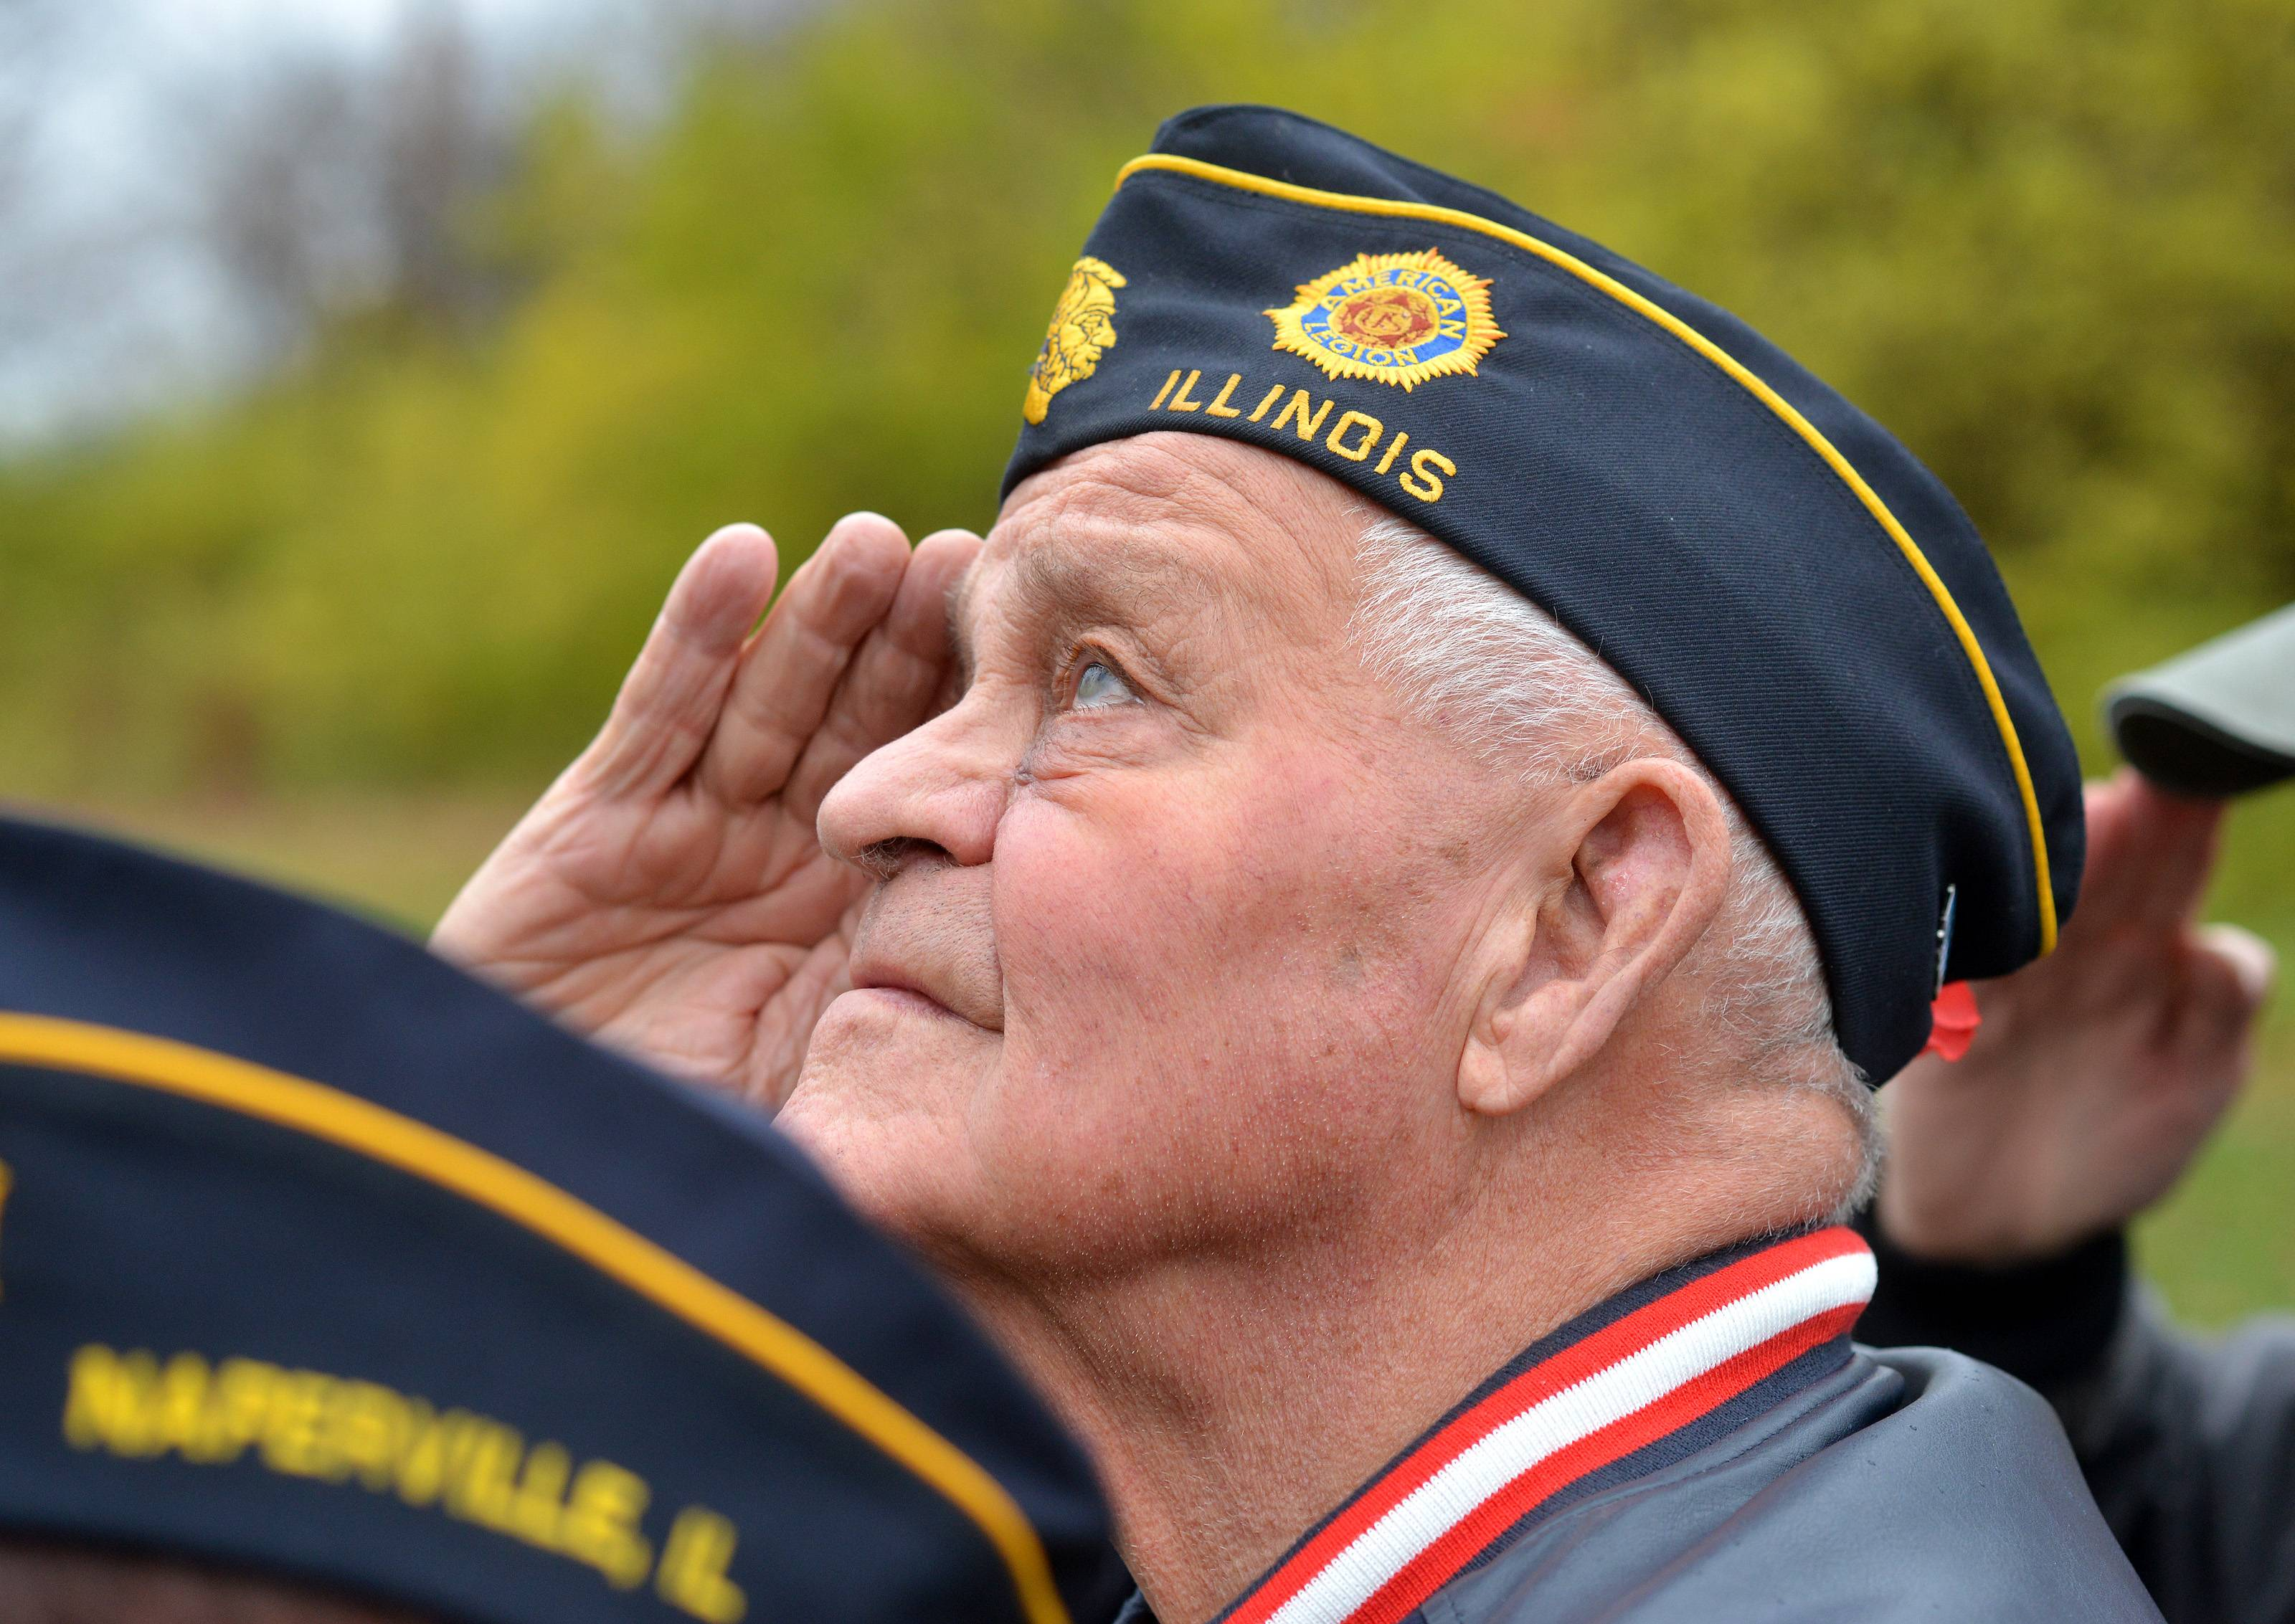 Former Army Cpl Don Wehrli, of Naperville, salutes during the Star-Spangled Banner as Naperville marked Veterans Day with a ceremony at 11 a.m. at Veterans Park on east Gartner Road just east of Edgewater Drive and the DuPage River.